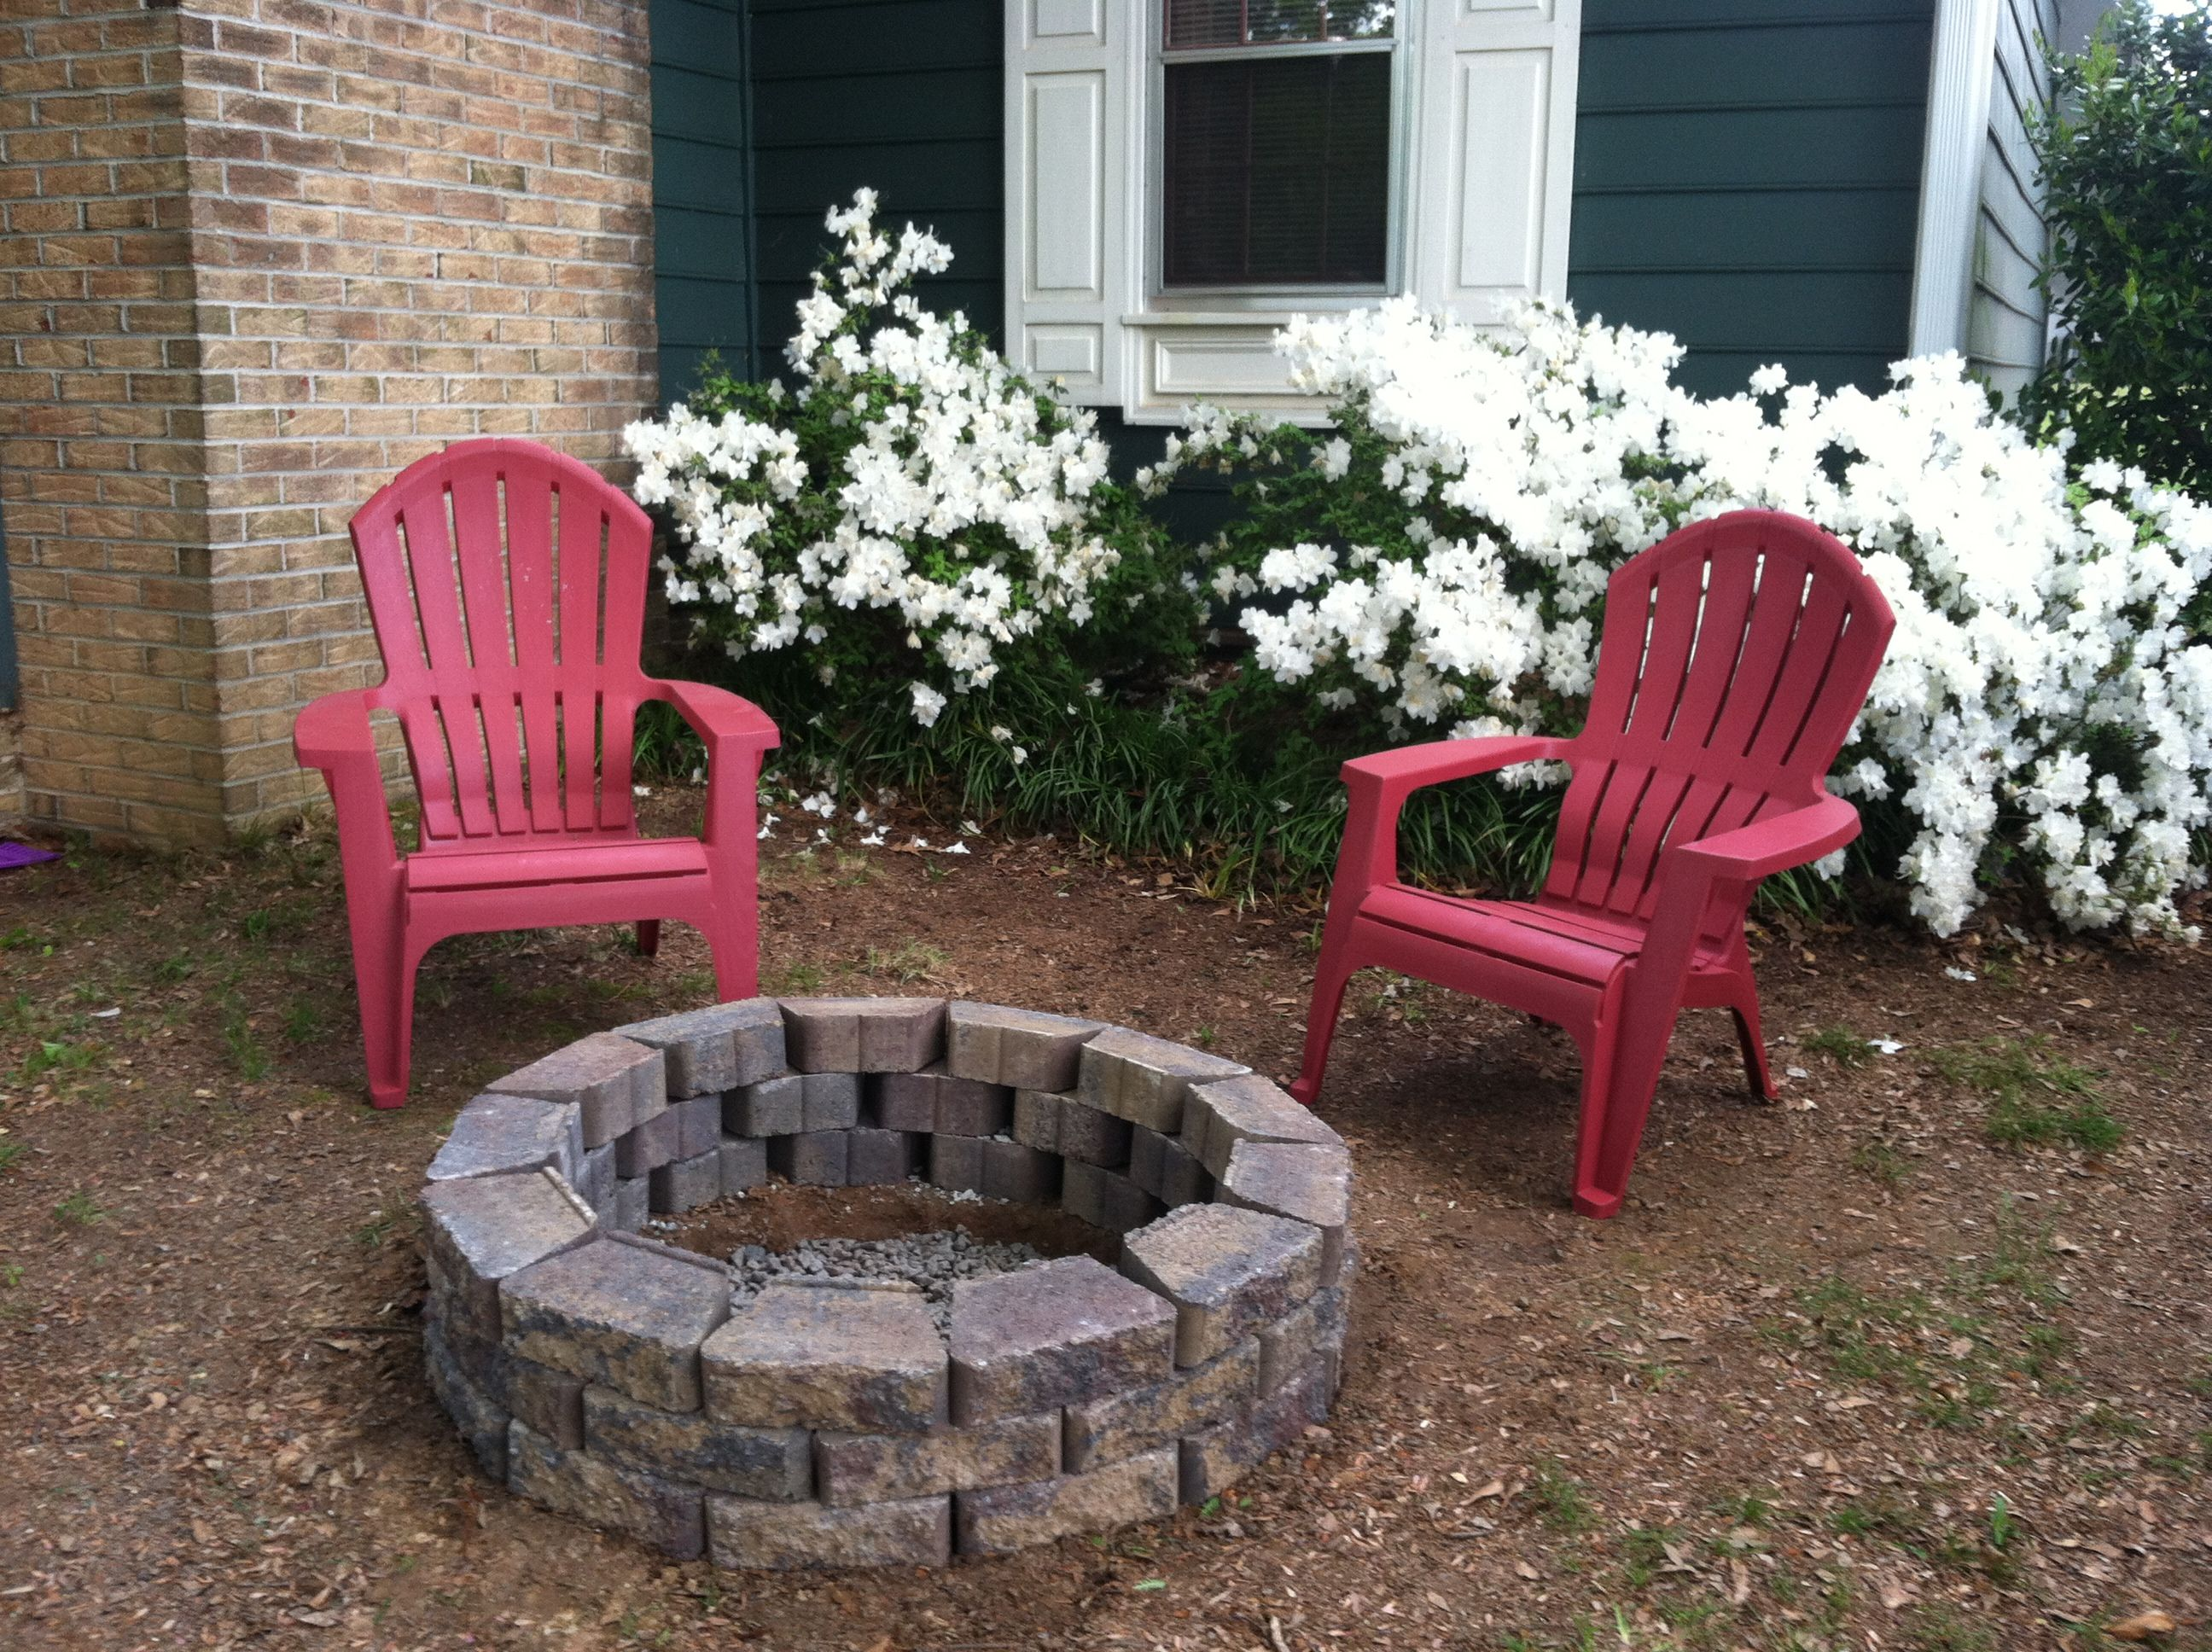 Easy DIY fire pit with edgers from Home Depot. Less than